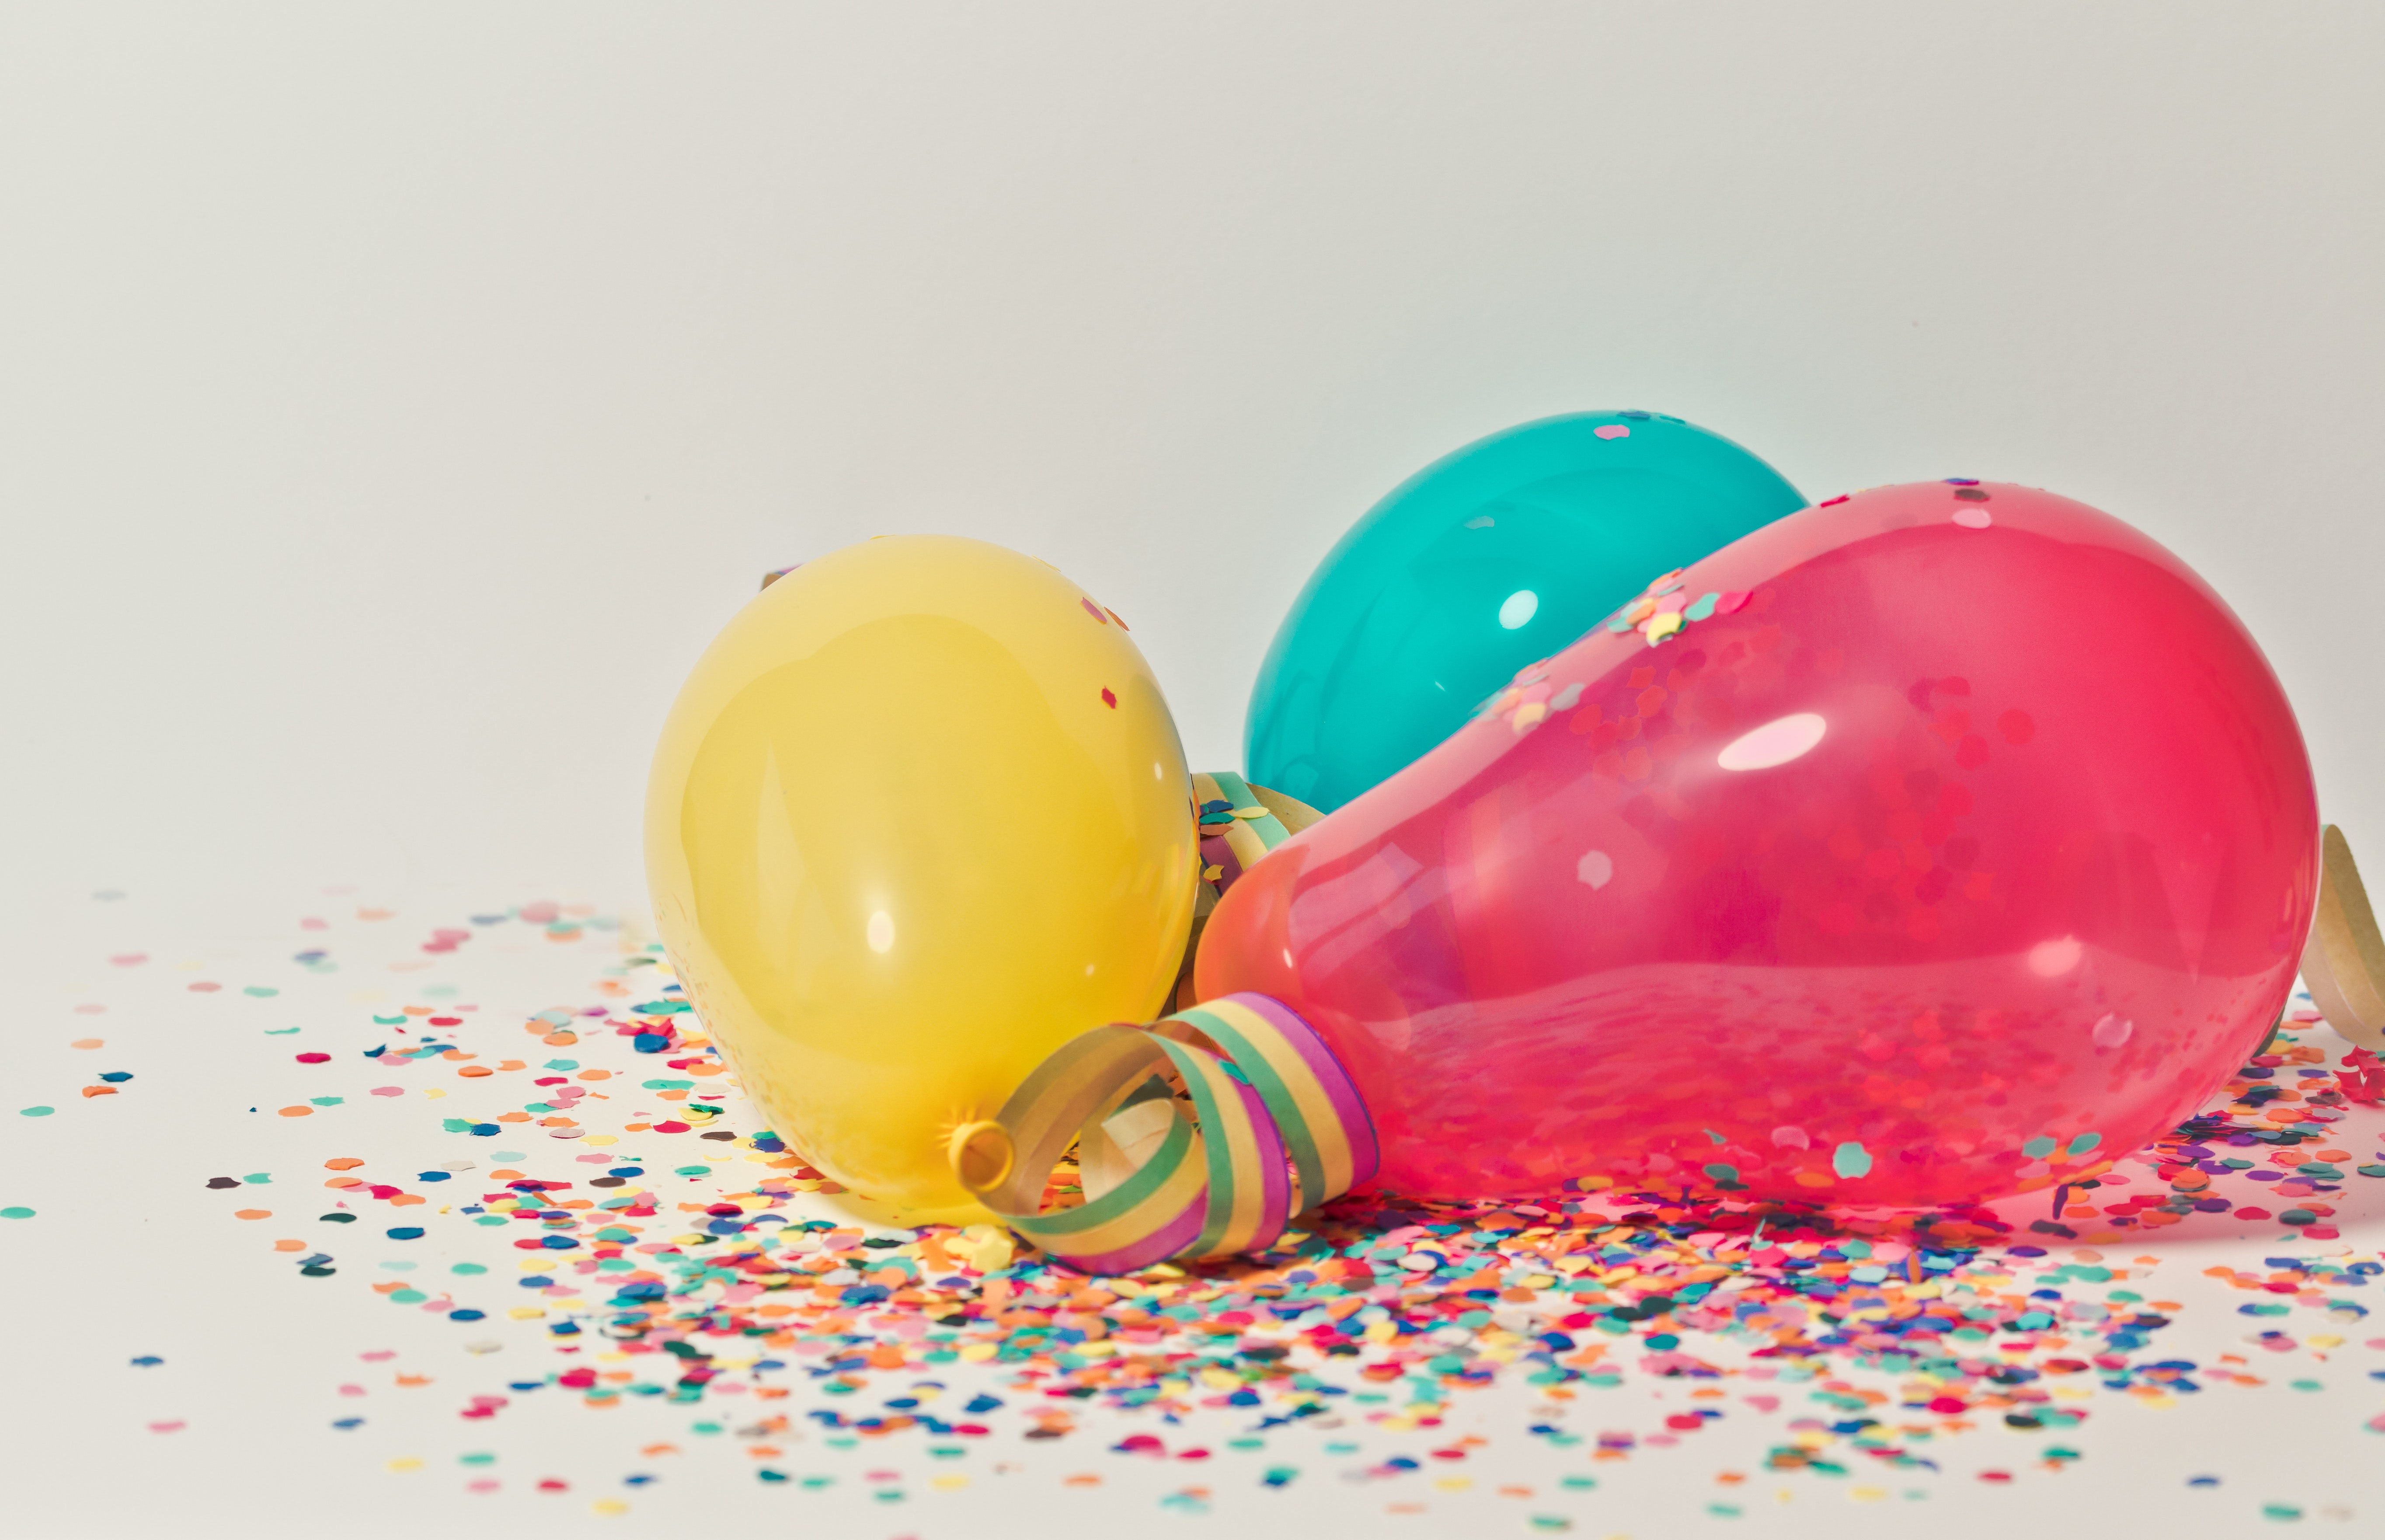 Balloons after party